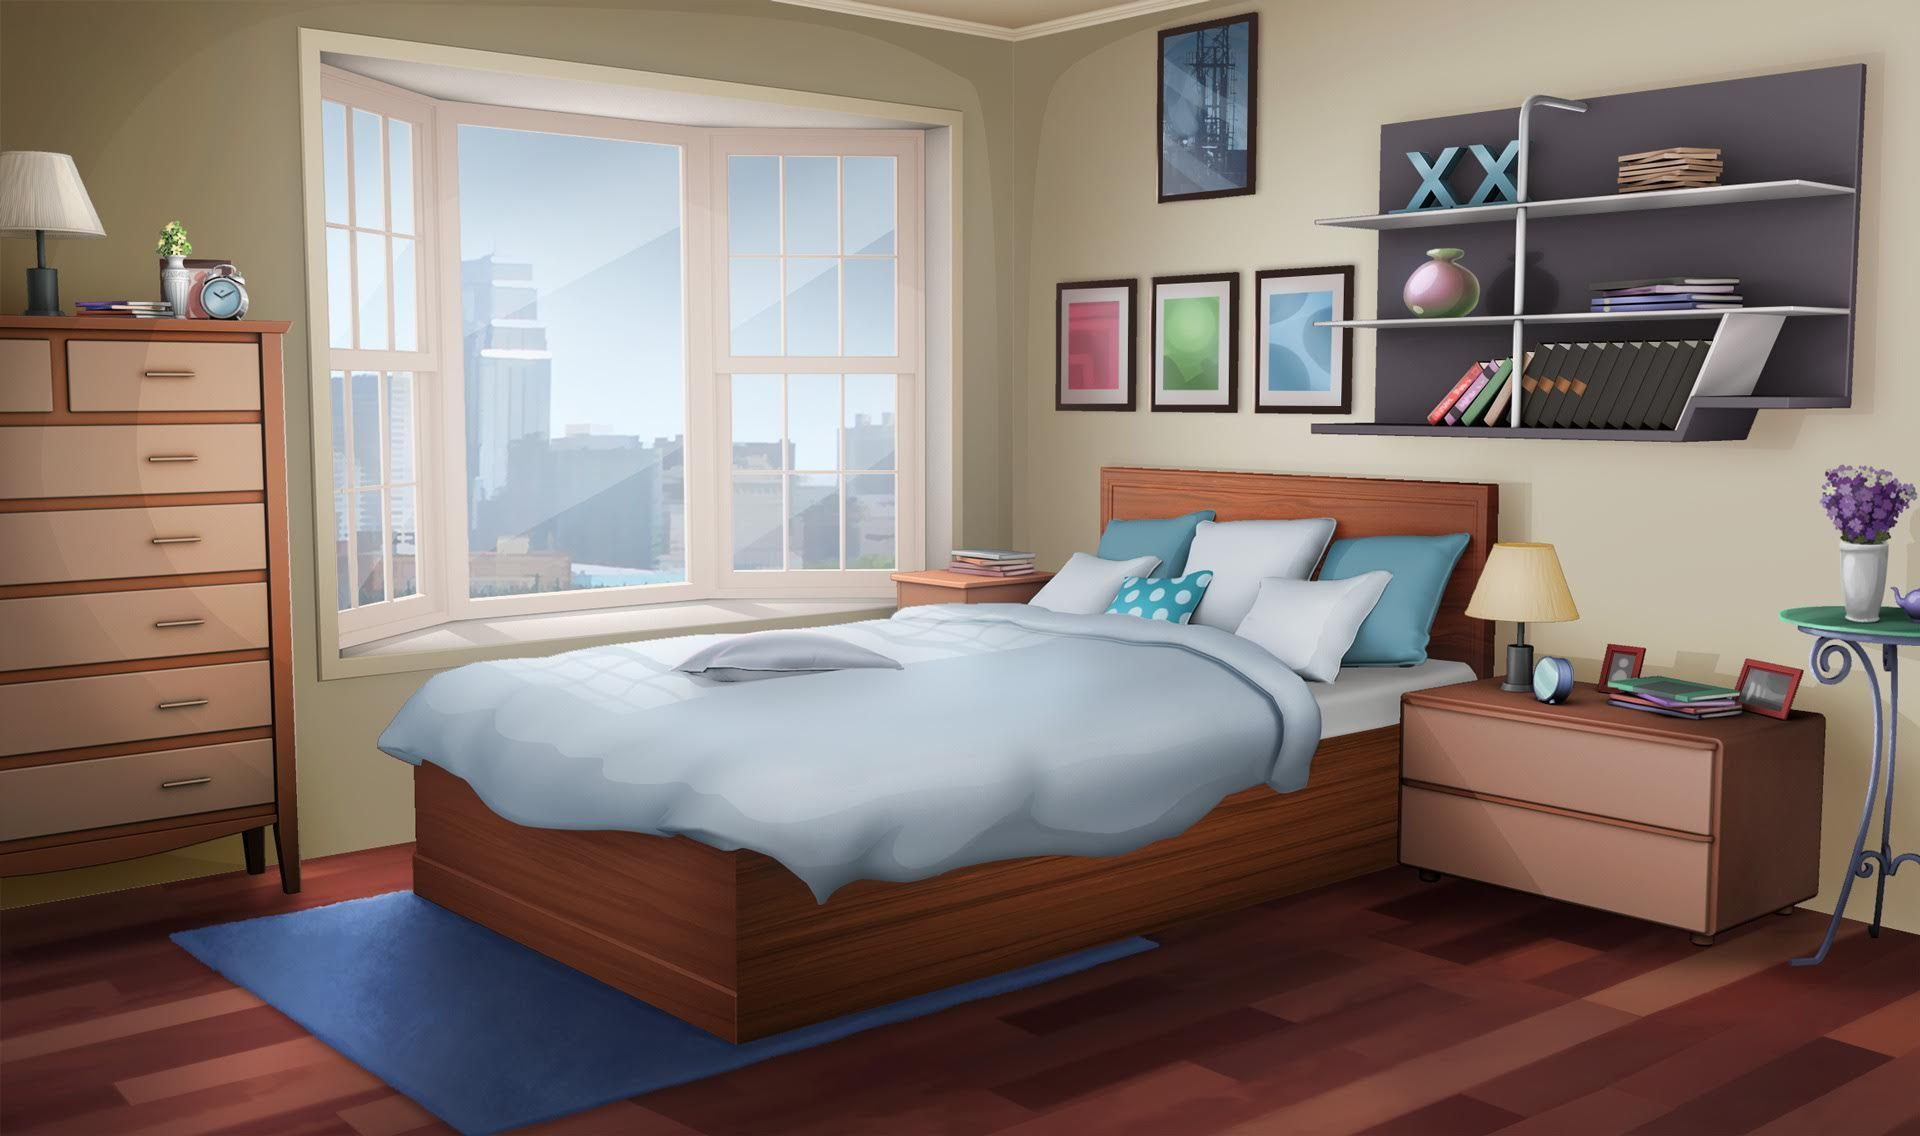 Anime Bedroom Background Day Anime Background Bedroom Designs